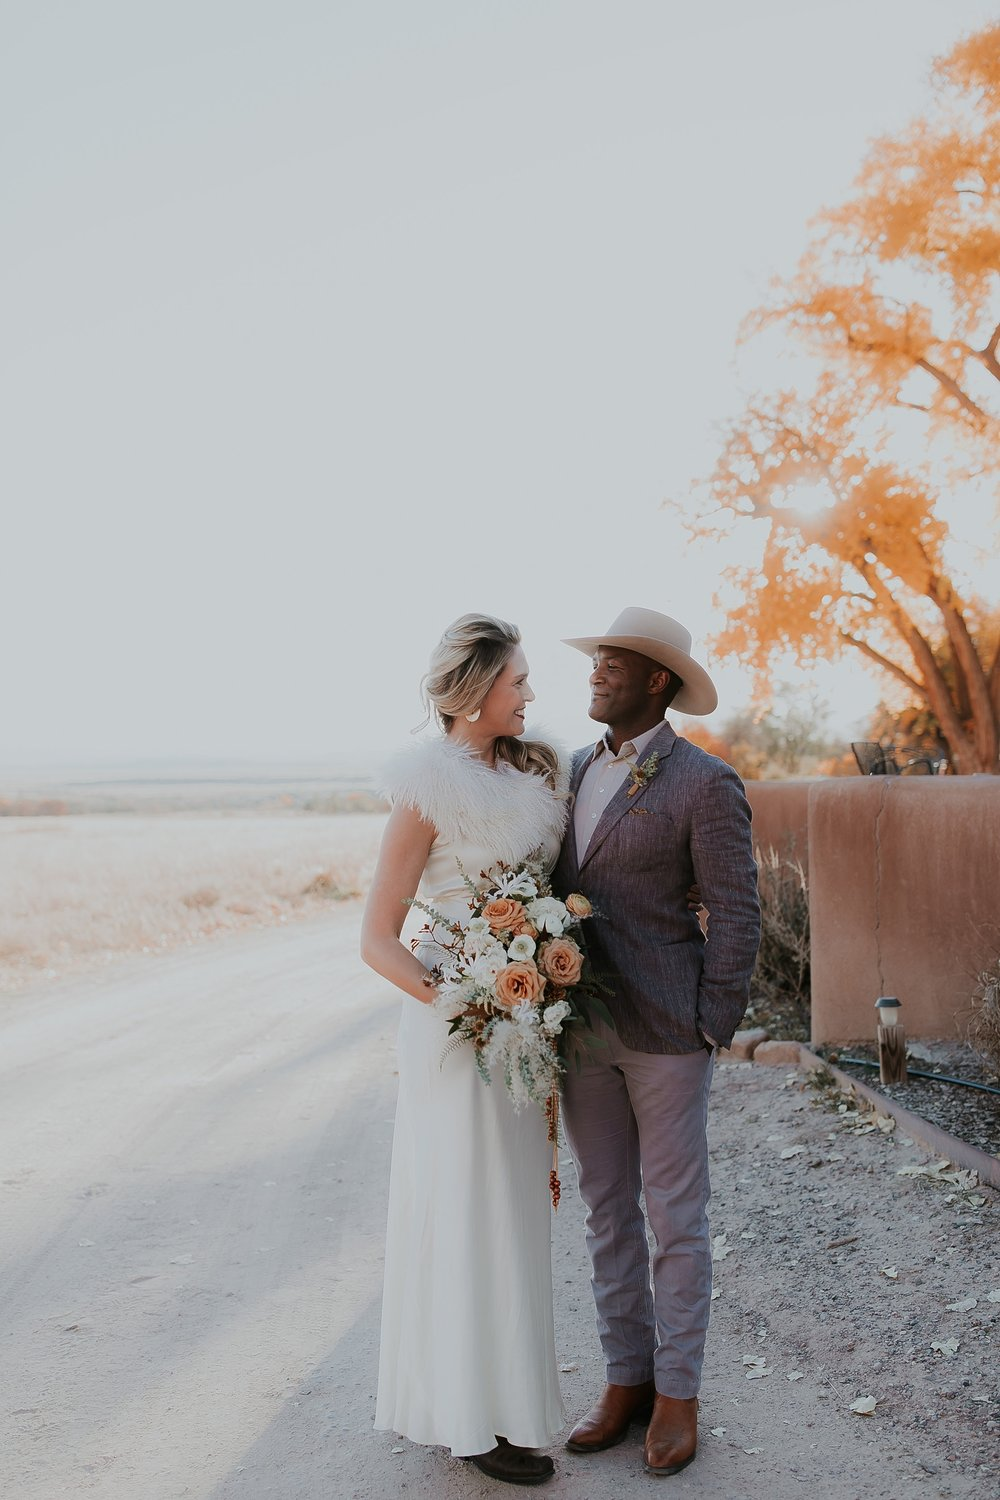 Alicia+lucia+photography+-+albuquerque+wedding+photographer+-+santa+fe+wedding+photography+-+new+mexico+wedding+photographer+-+new+mexico+ghost+ranch+wedding+-+styled+wedding+shoot_0049.jpg